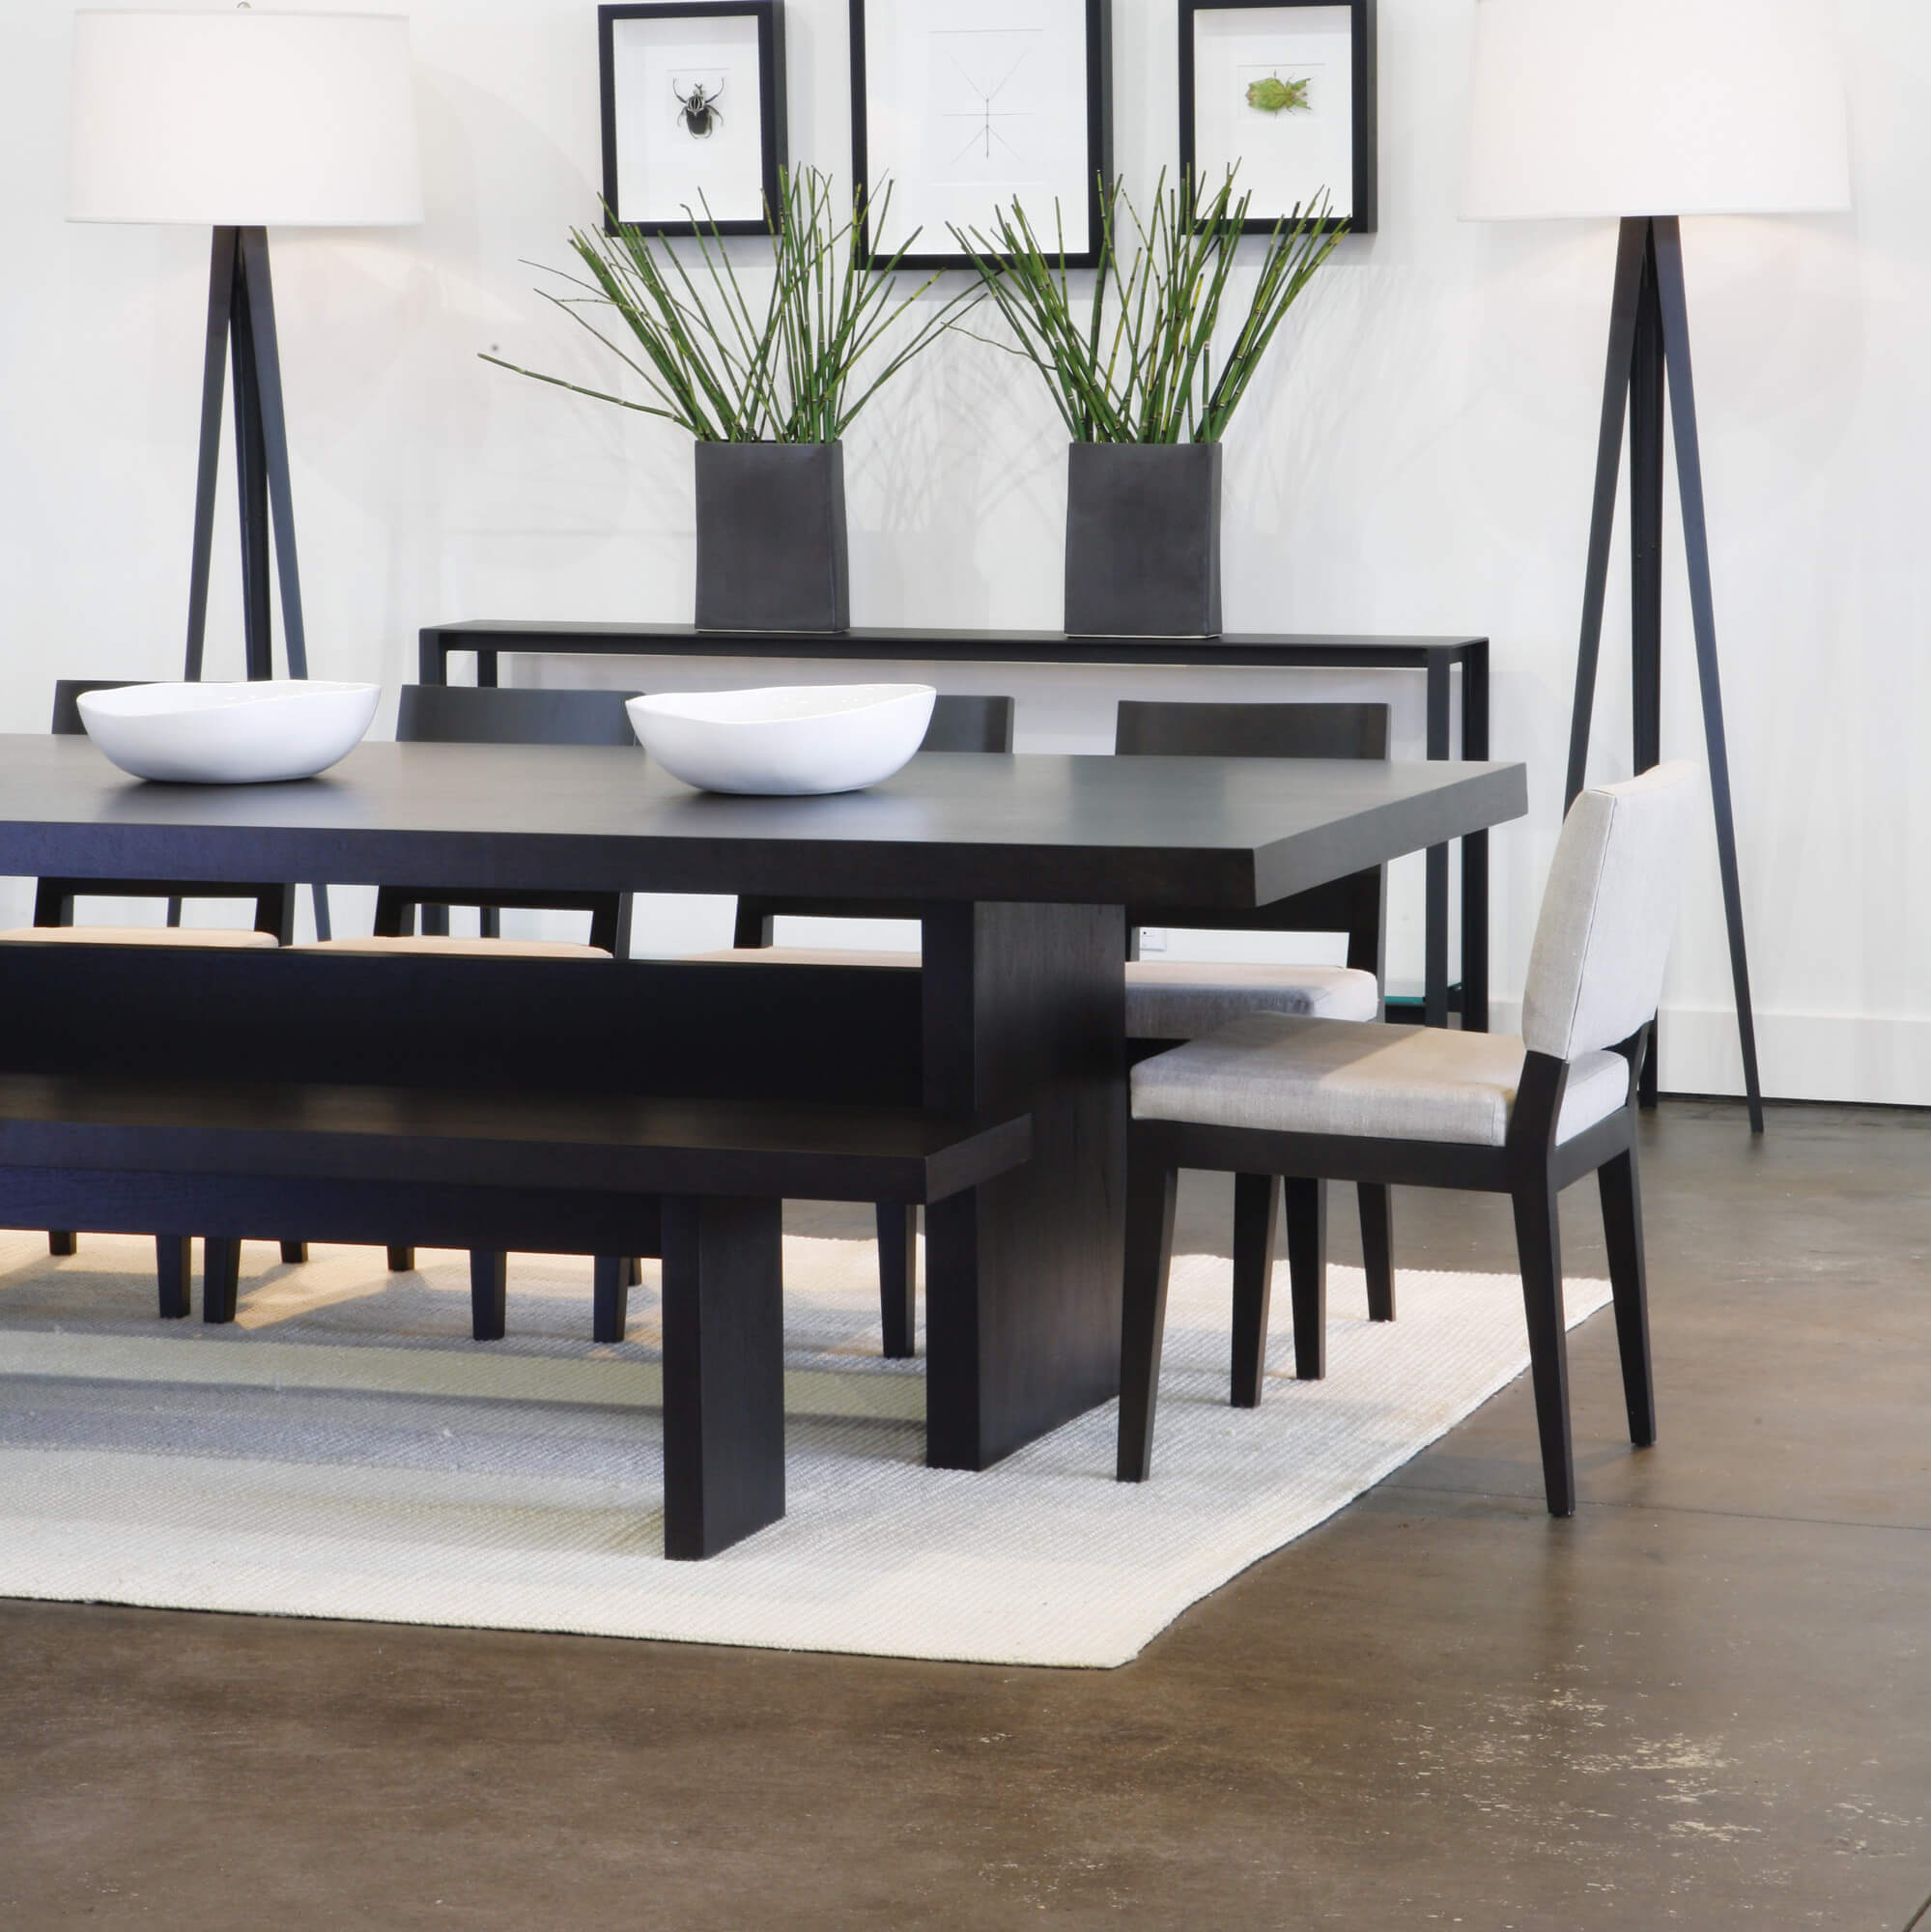 Awesome Bench Dining Room Table Ideas - adidaphat.us - adidaphat.us